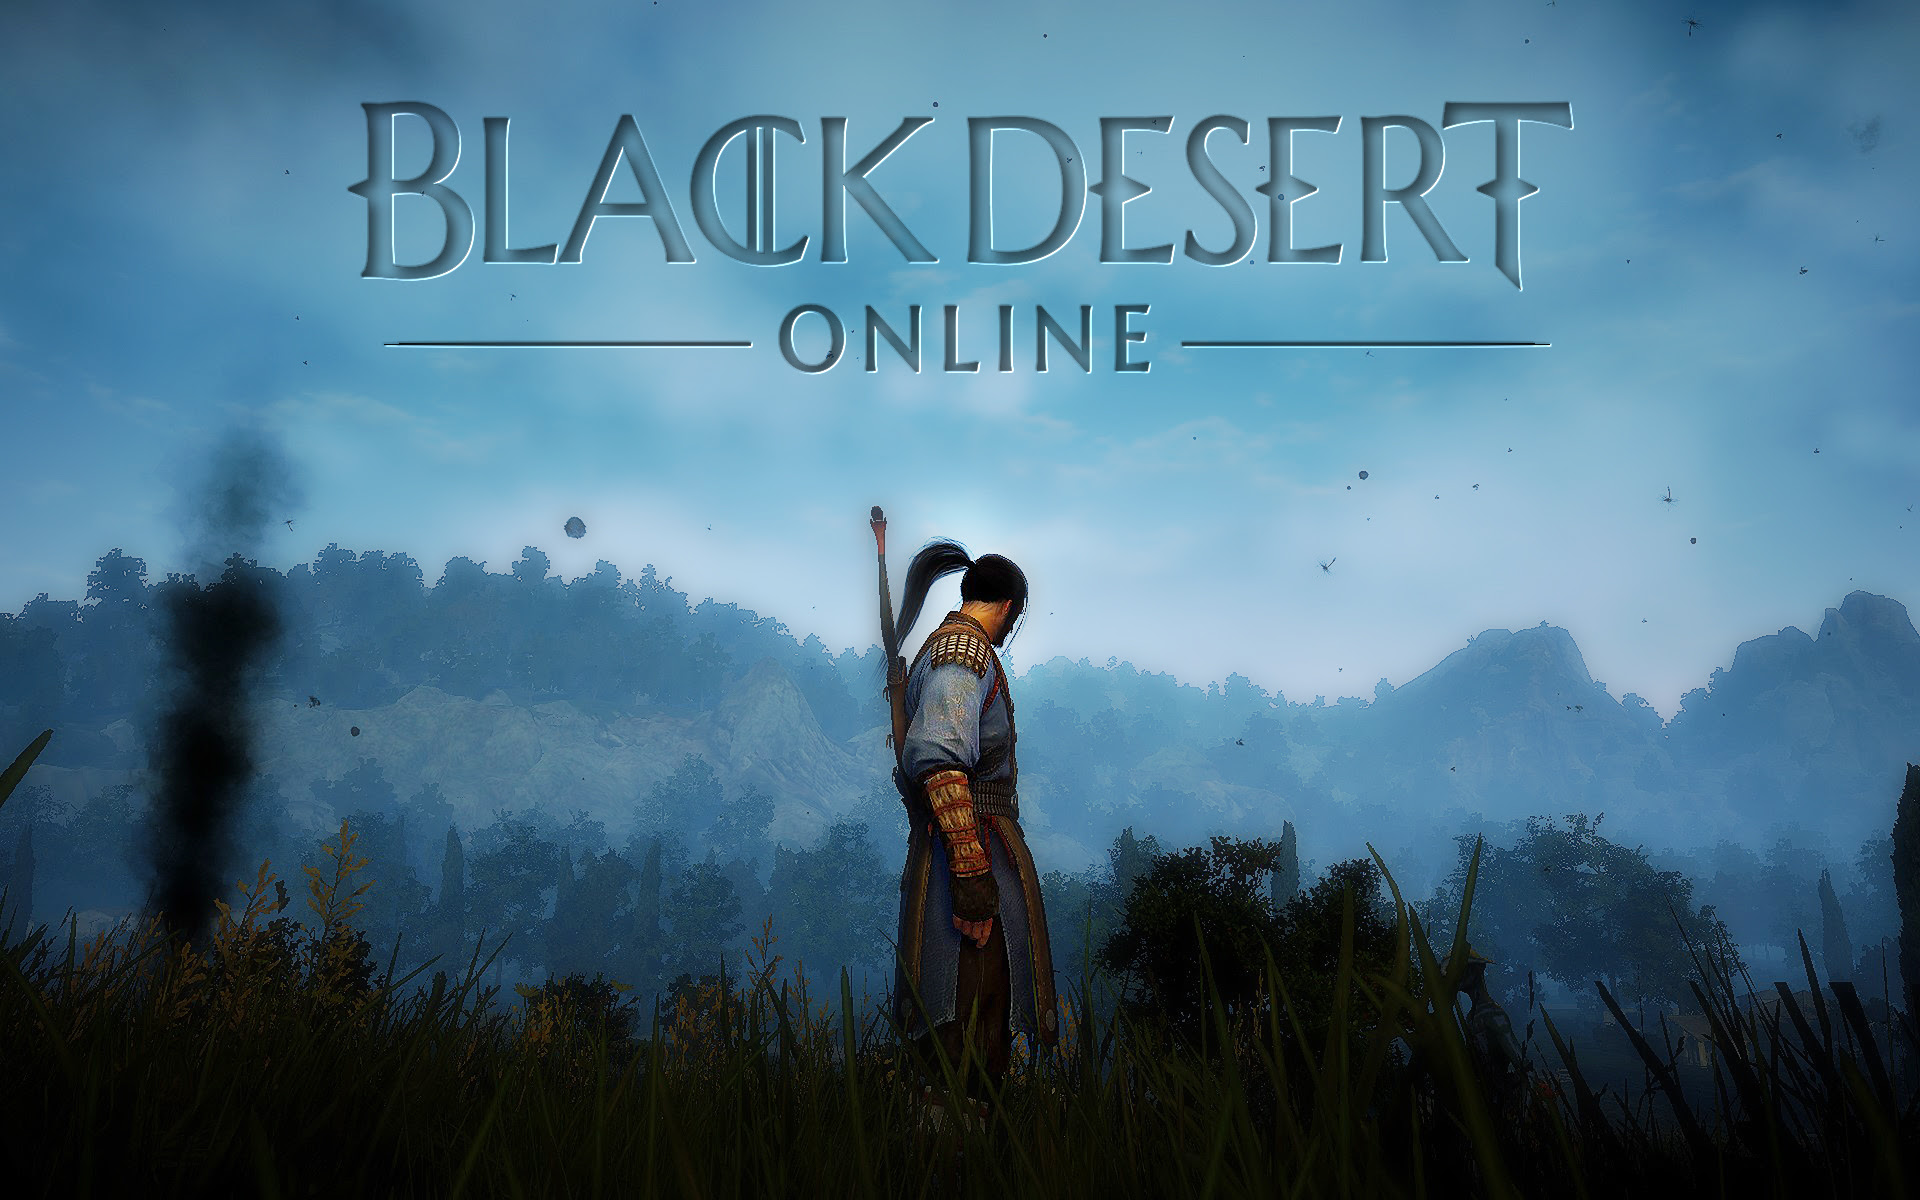 Download 9600 Wallpaper Black Desert Online HD Paling Keren